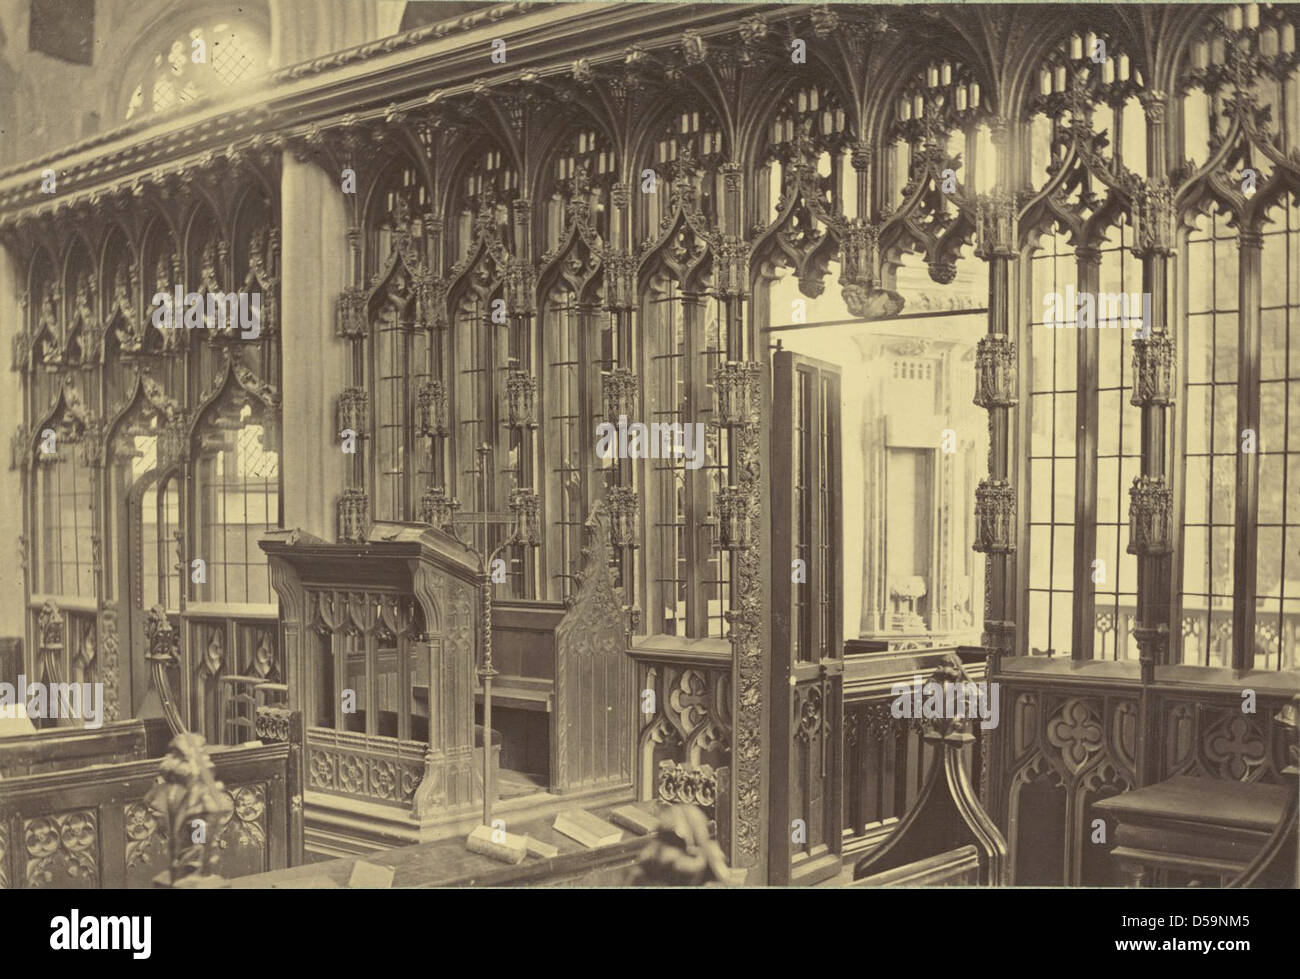 Untitled (Interior with choir screen, unidentified English church) Stock Photo